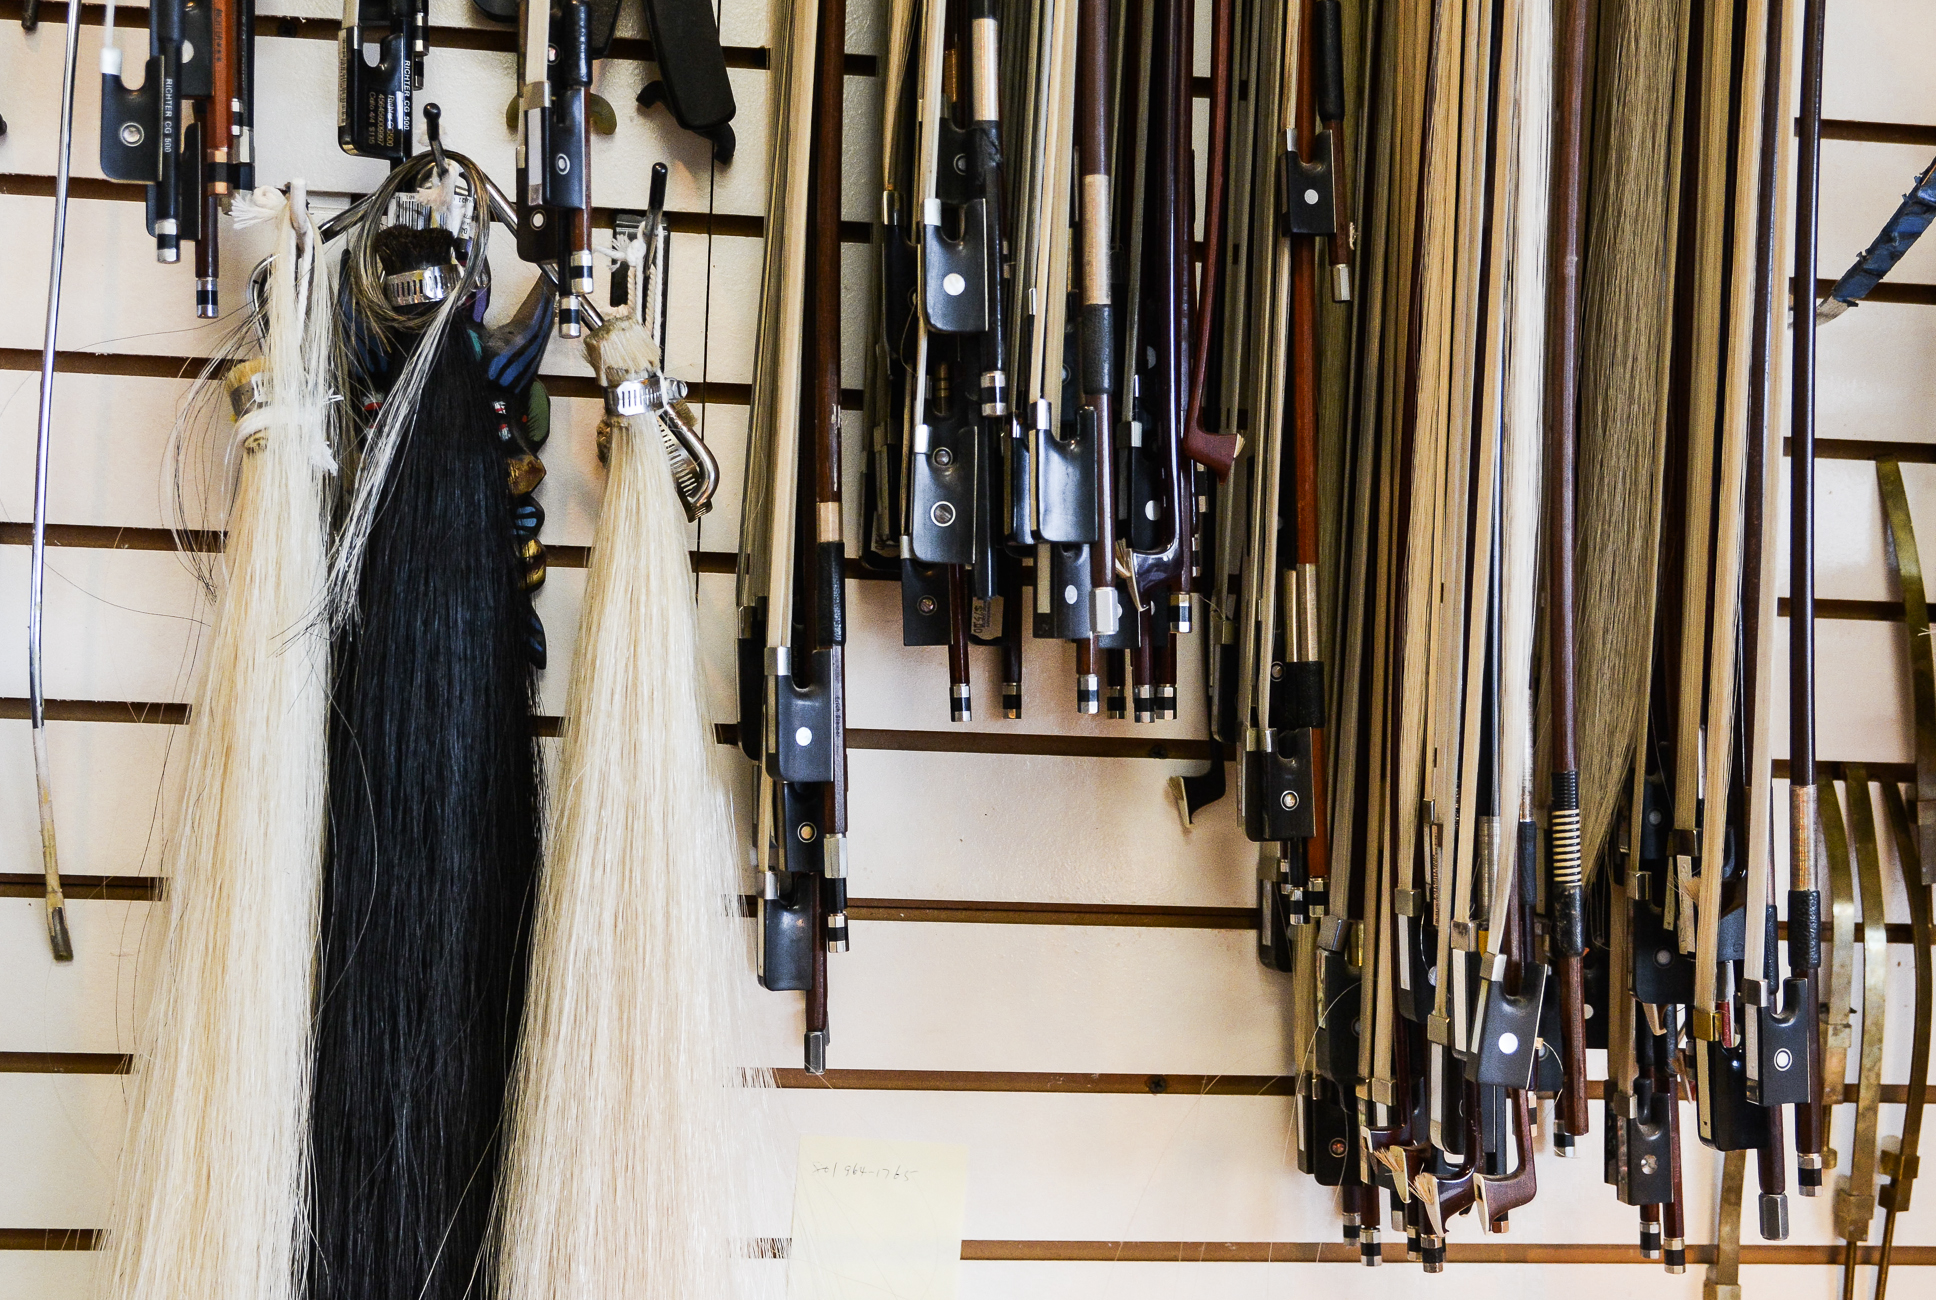 a wall with hanging Mongolian and Siberian horsehair next to dozens of violin, viola, cello and bass bows.